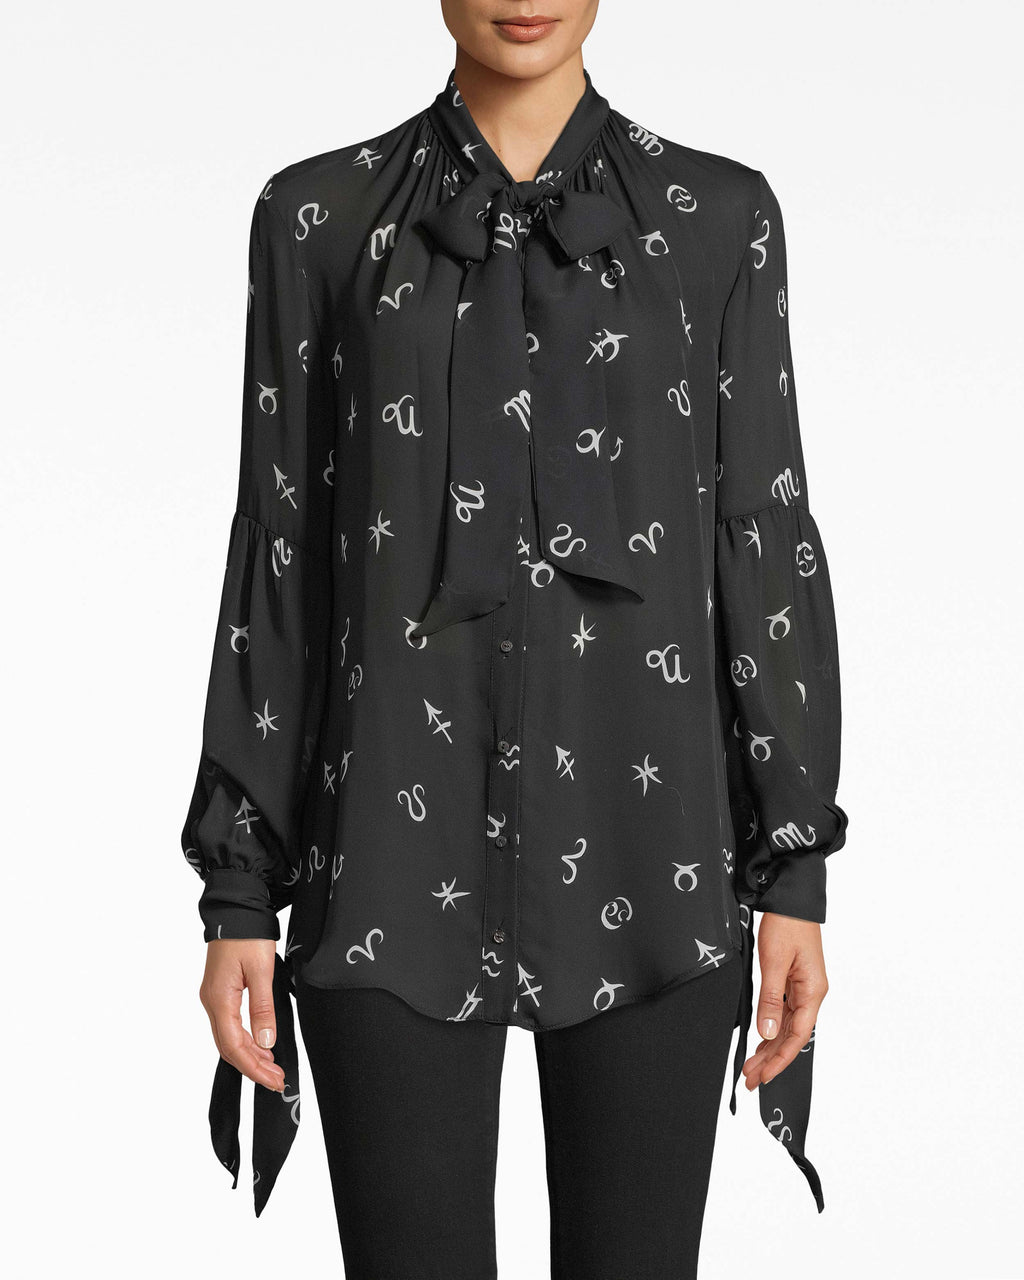 BD10287 - HOROSCOPE SILK STOCK TIE LONG SLEEVE BLOUSE - tops - blouses - Your horoscope says: this blouse. Not only does it feature an astrological print, but it has bows on the neck and sleeves.